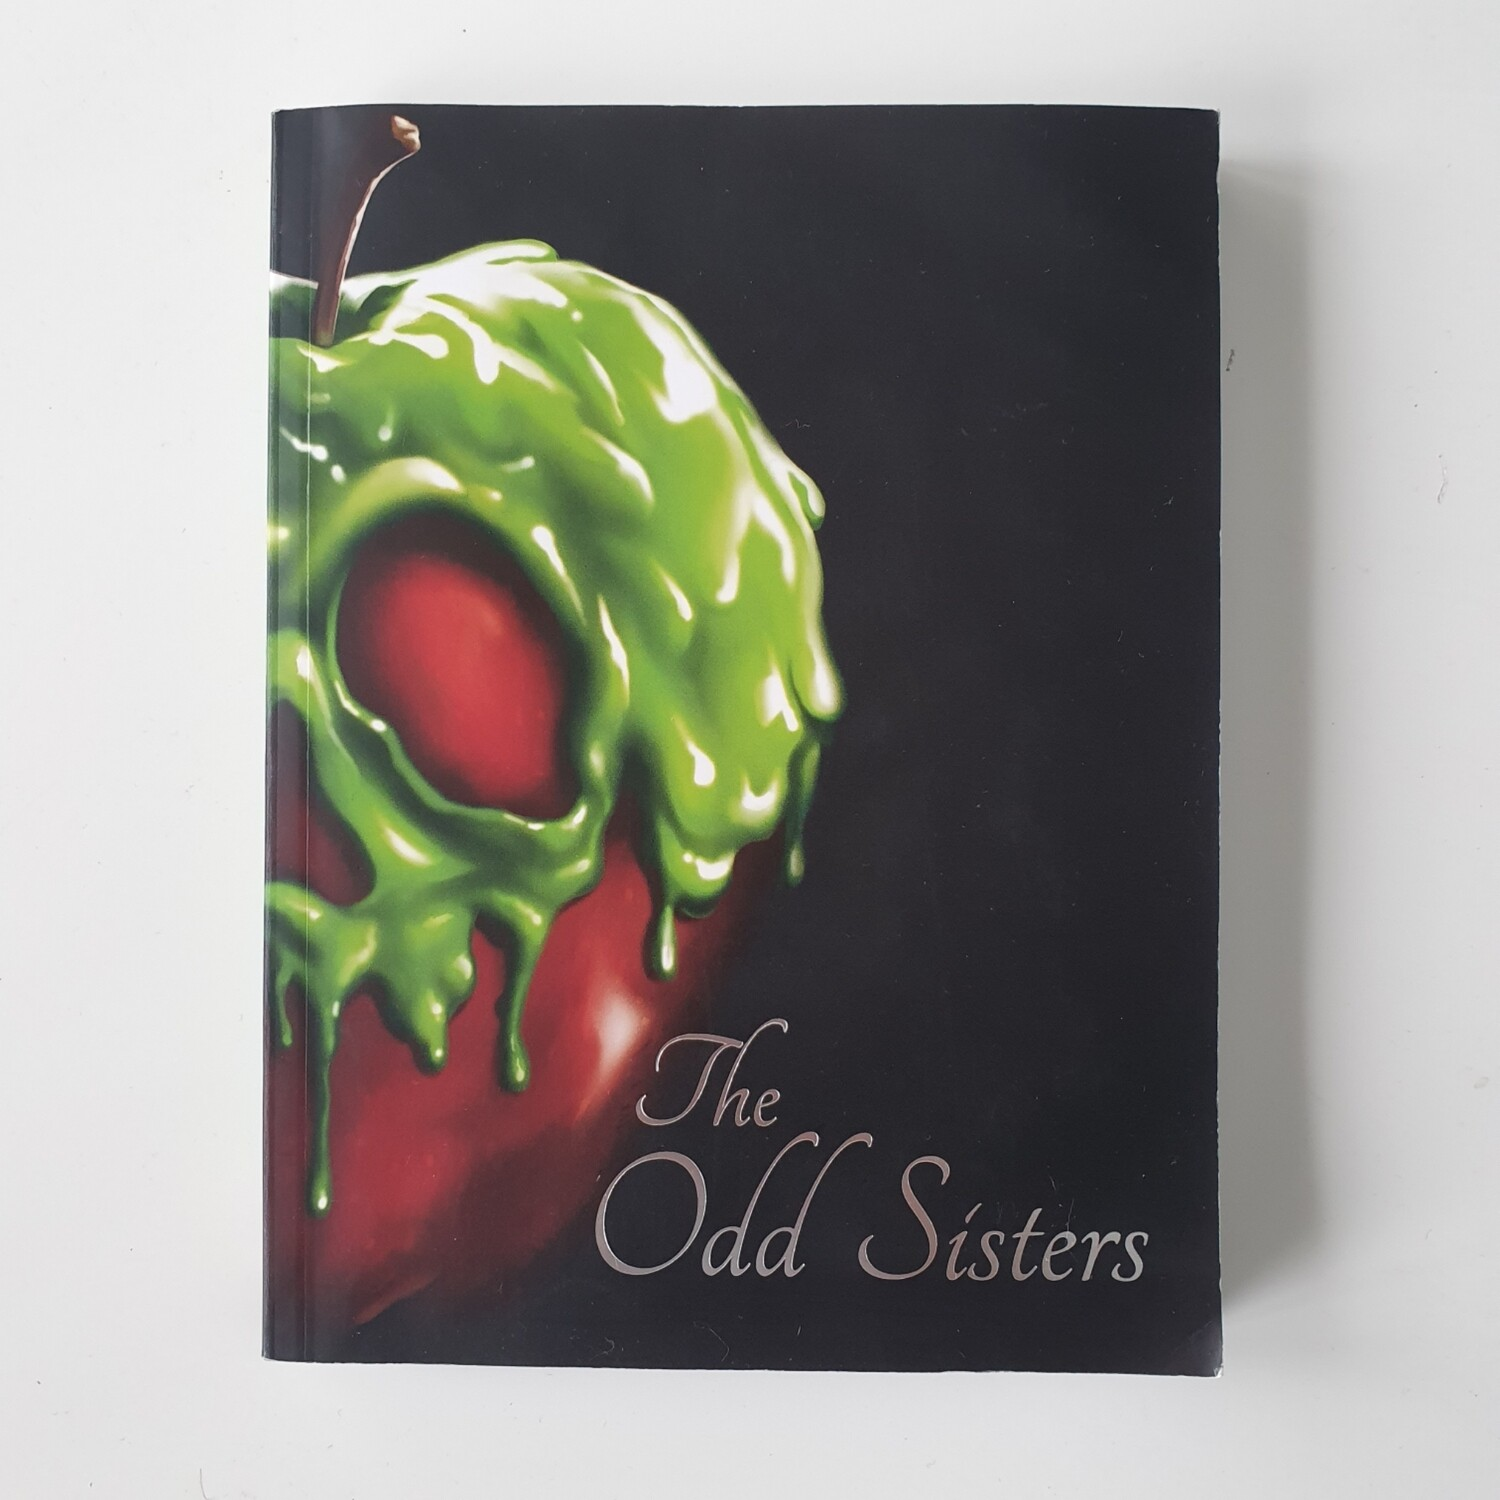 Disney Twisted Tale - The Odd Sisters - Snow White Notebook - made from a paperback book